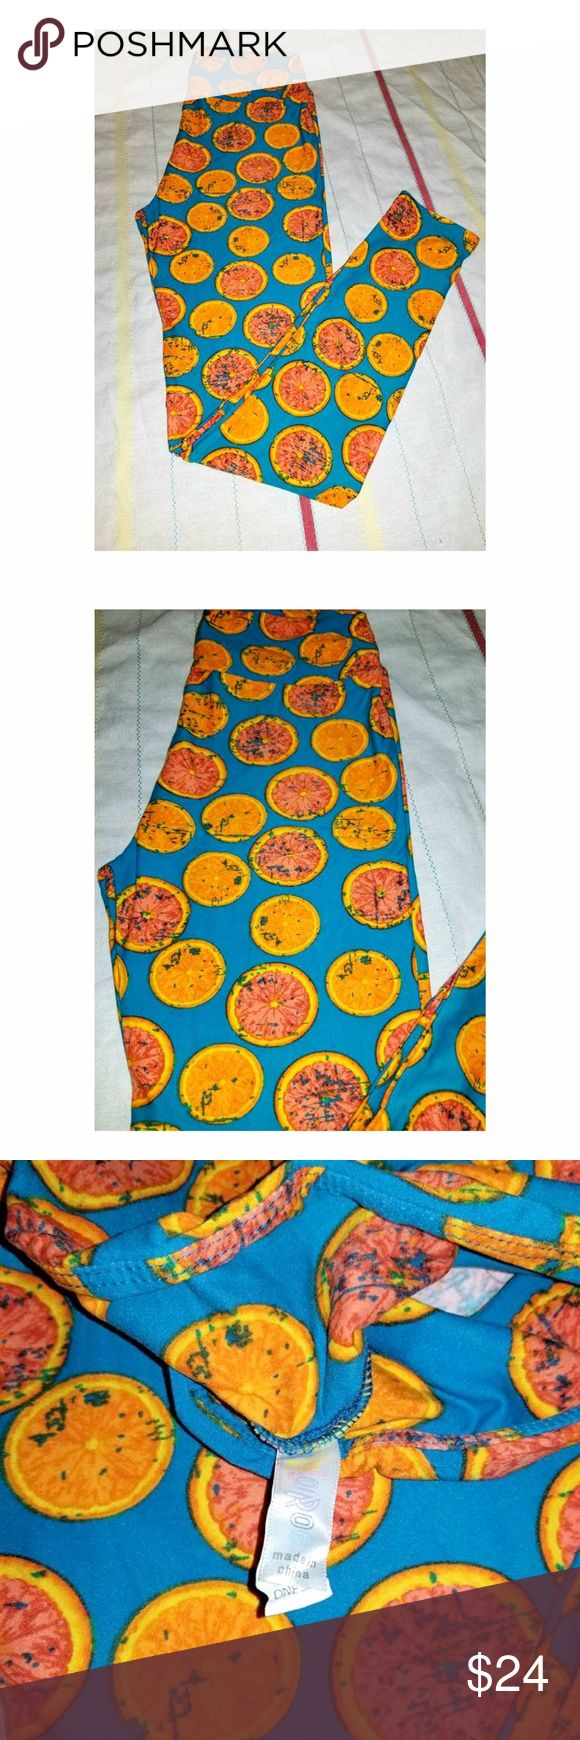 LulaRoe Sliced Oranges Leggings OS Fits 2-10 LulaRoe Sliced Oranges Leggings OS Fits 2-10 NEW in Original Packaging  No tears, stains or smells, Home is NON Smoking  I welcome OFFERS, BUNDLED Pricing and Offer FAST Shipping.   I am not a Lula Rep, Never Have been, Just a Lula Addict that purchases way too many and sometimes duplicates because I forget what I have already ordered. I have paid either retail or above. LuLaRoe Pants Leggings